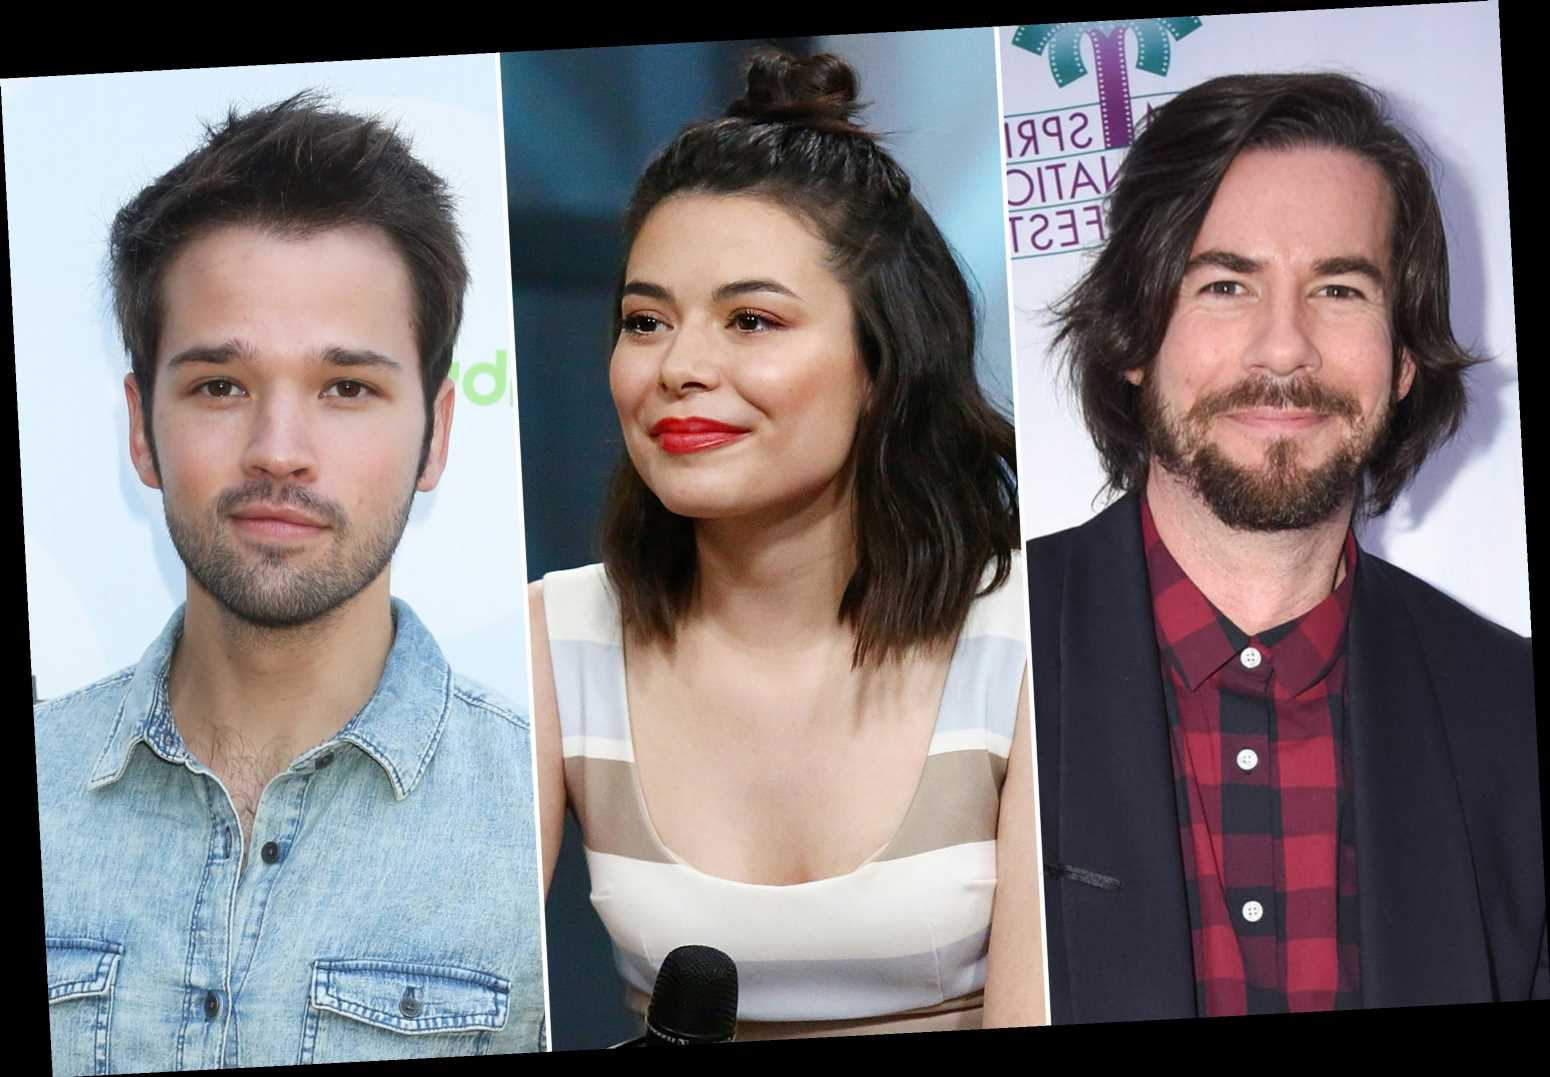 'iCarly' cast set to reunite at Nickelodeon Kids' Choice Awards